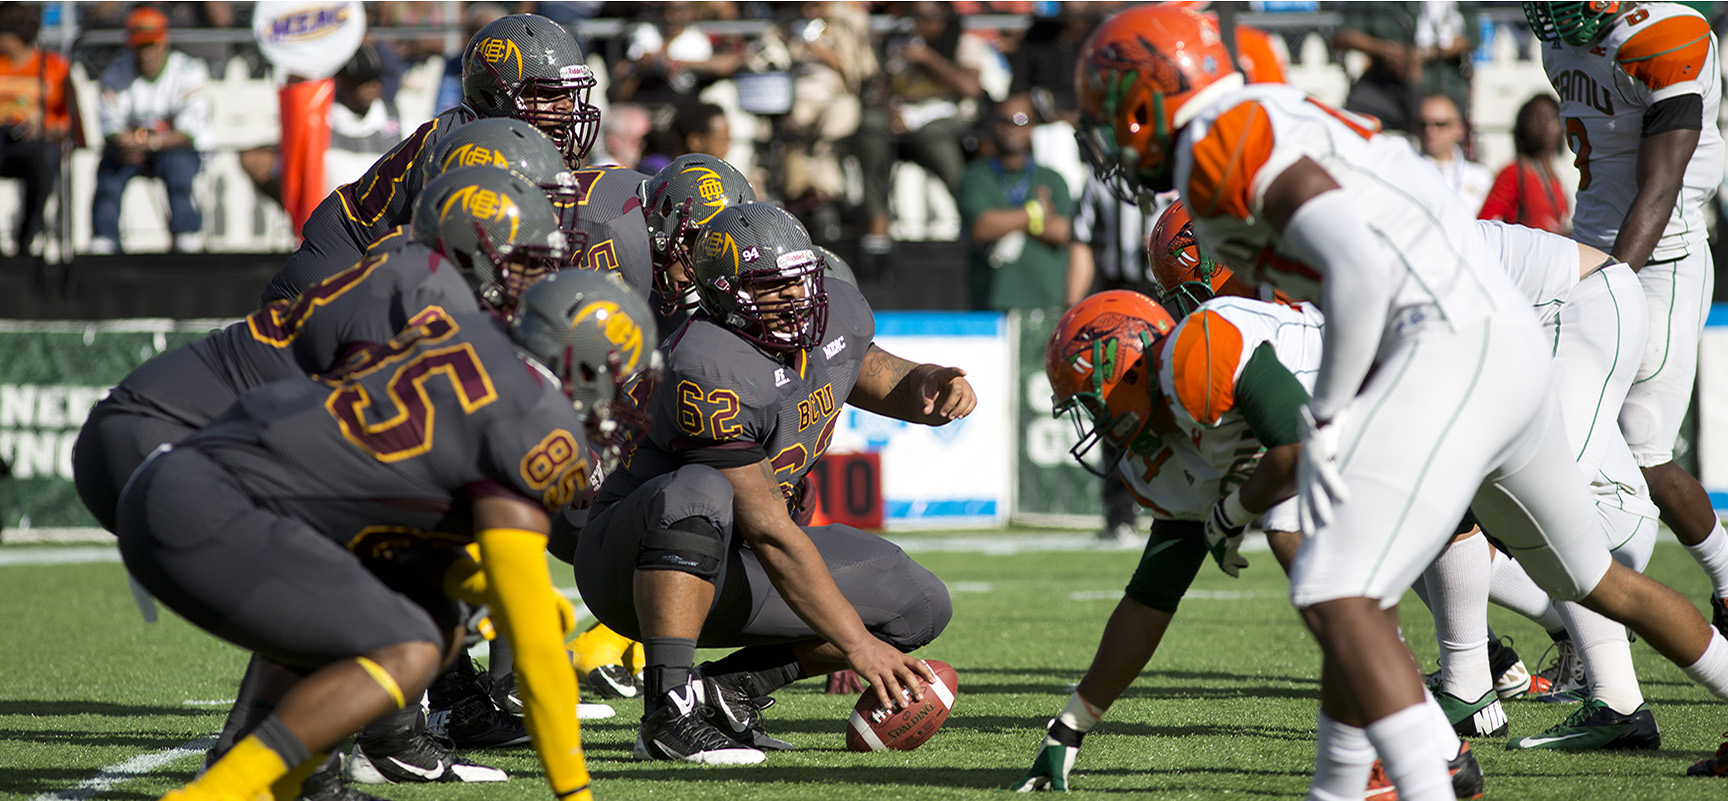 ORLANDO, Fla. (FNN SPORTS) - The Florida A&M University (FAMU) Rattlers entered Saturday's showdown with something to prove, but the B-CU Wildcats came into the 2017 Florida Blue Florida Classic ready to take another win at Camping World Stadium Saturday afternoon. Photo: floridaclassic.org.